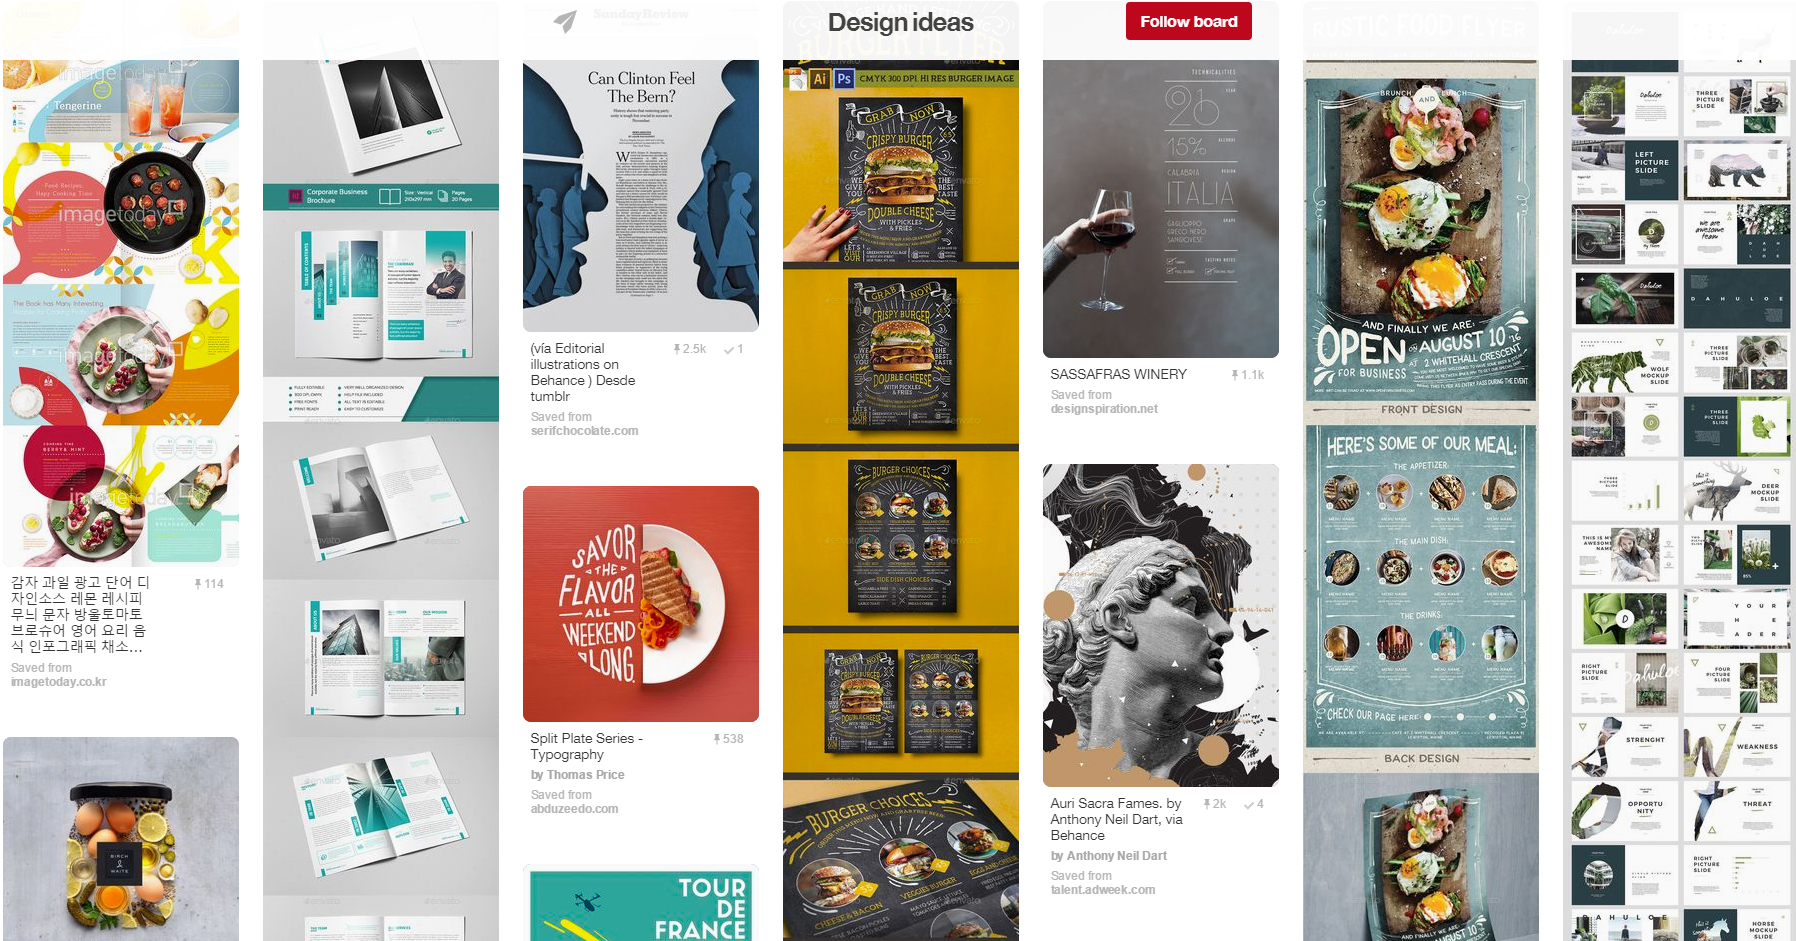 design-ideas-pinterest-board